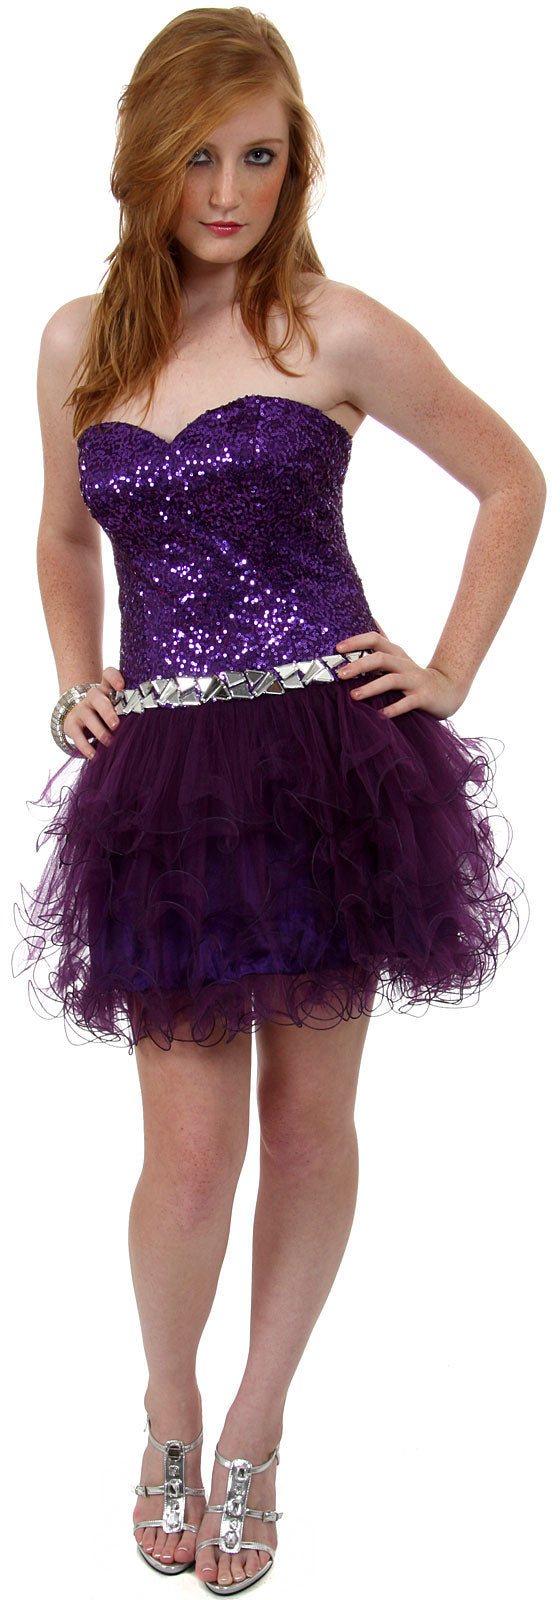 Main image of Strapless Sequined Short Party Cocktail Dress